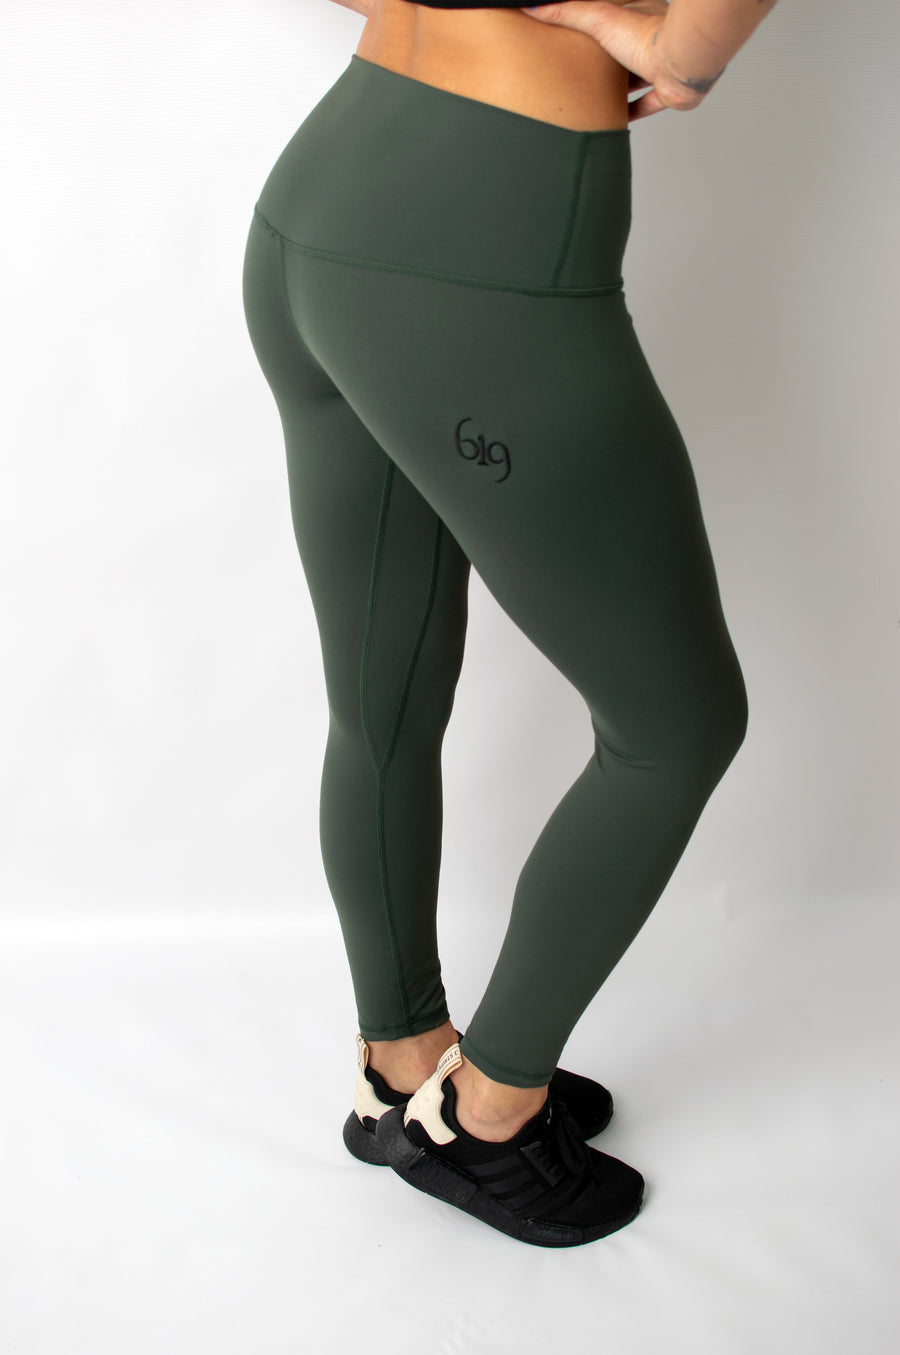 Infusion Legging Khaki Green - BIG Gymwear Ltd